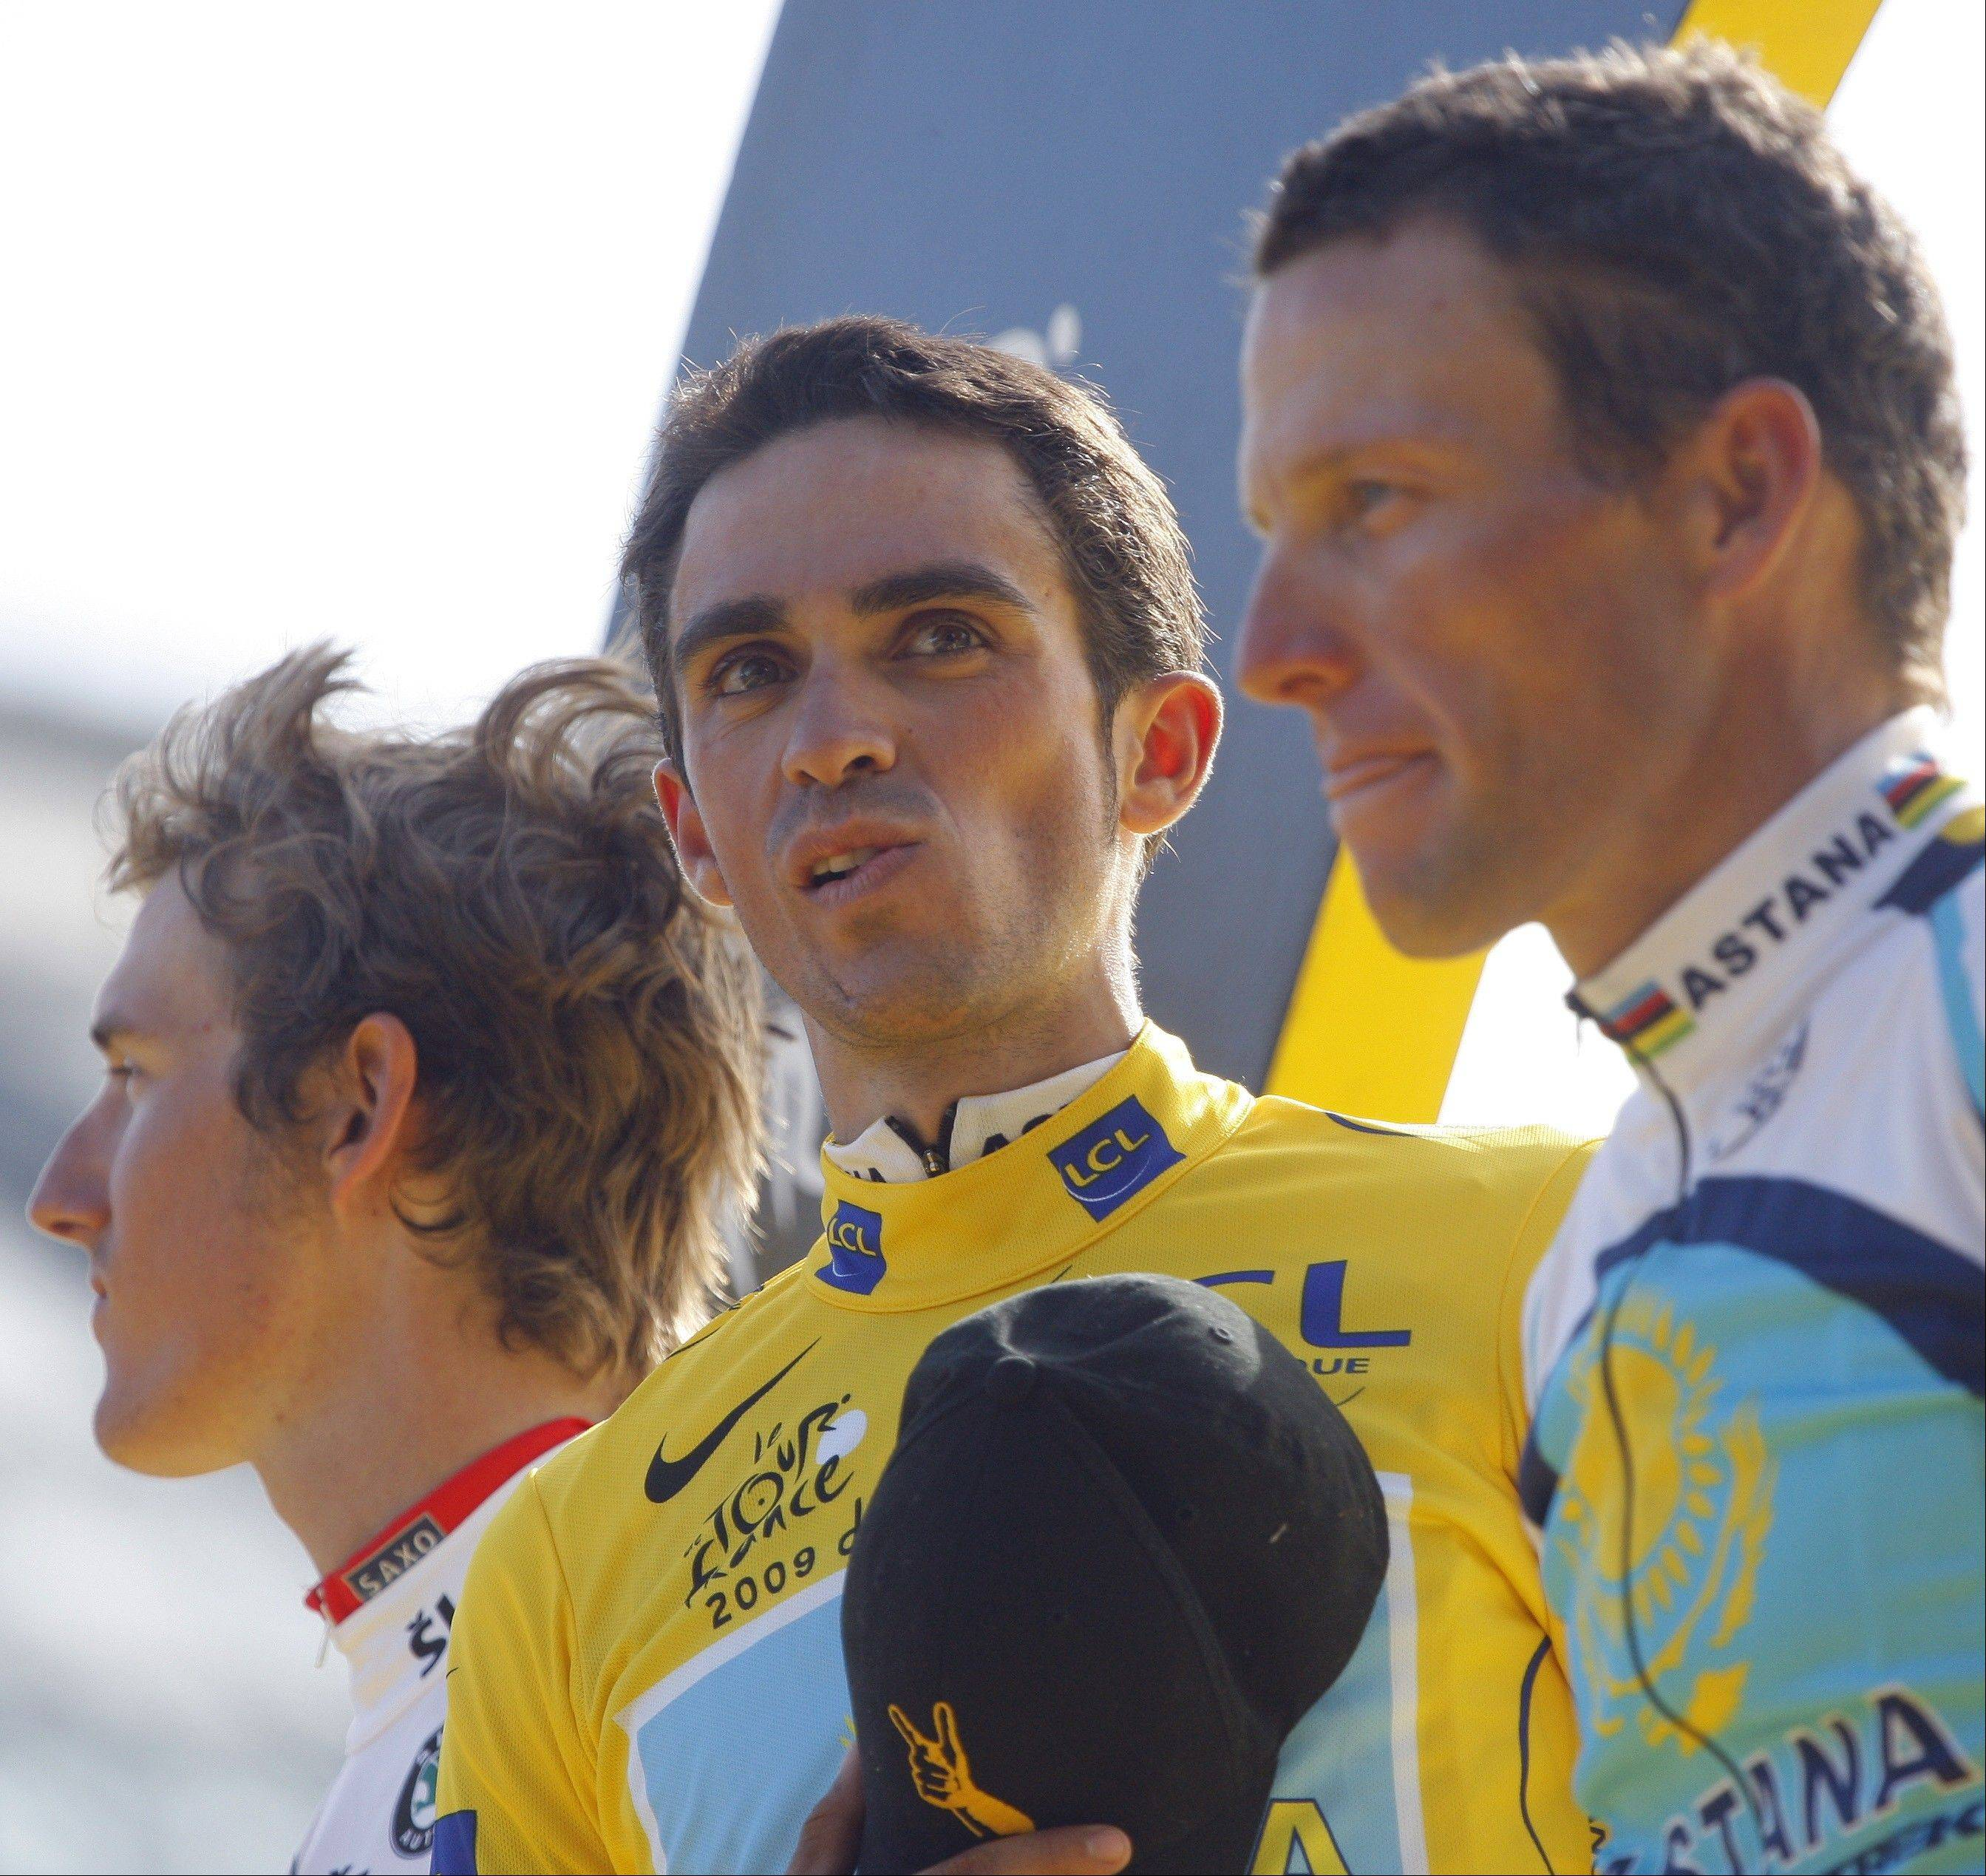 Tour de France winner Alberto Contador of Spain, wearing the overall leader's yellow jersey, center, framed by second-placed overall Andy Schleck of Luxembourg, wearing the best young rider's white jersey, left, and third-placed overall American seven-time Tour de France winner Lance Armstrong, reacts on the podium after the 21st stage of the Tour de France.